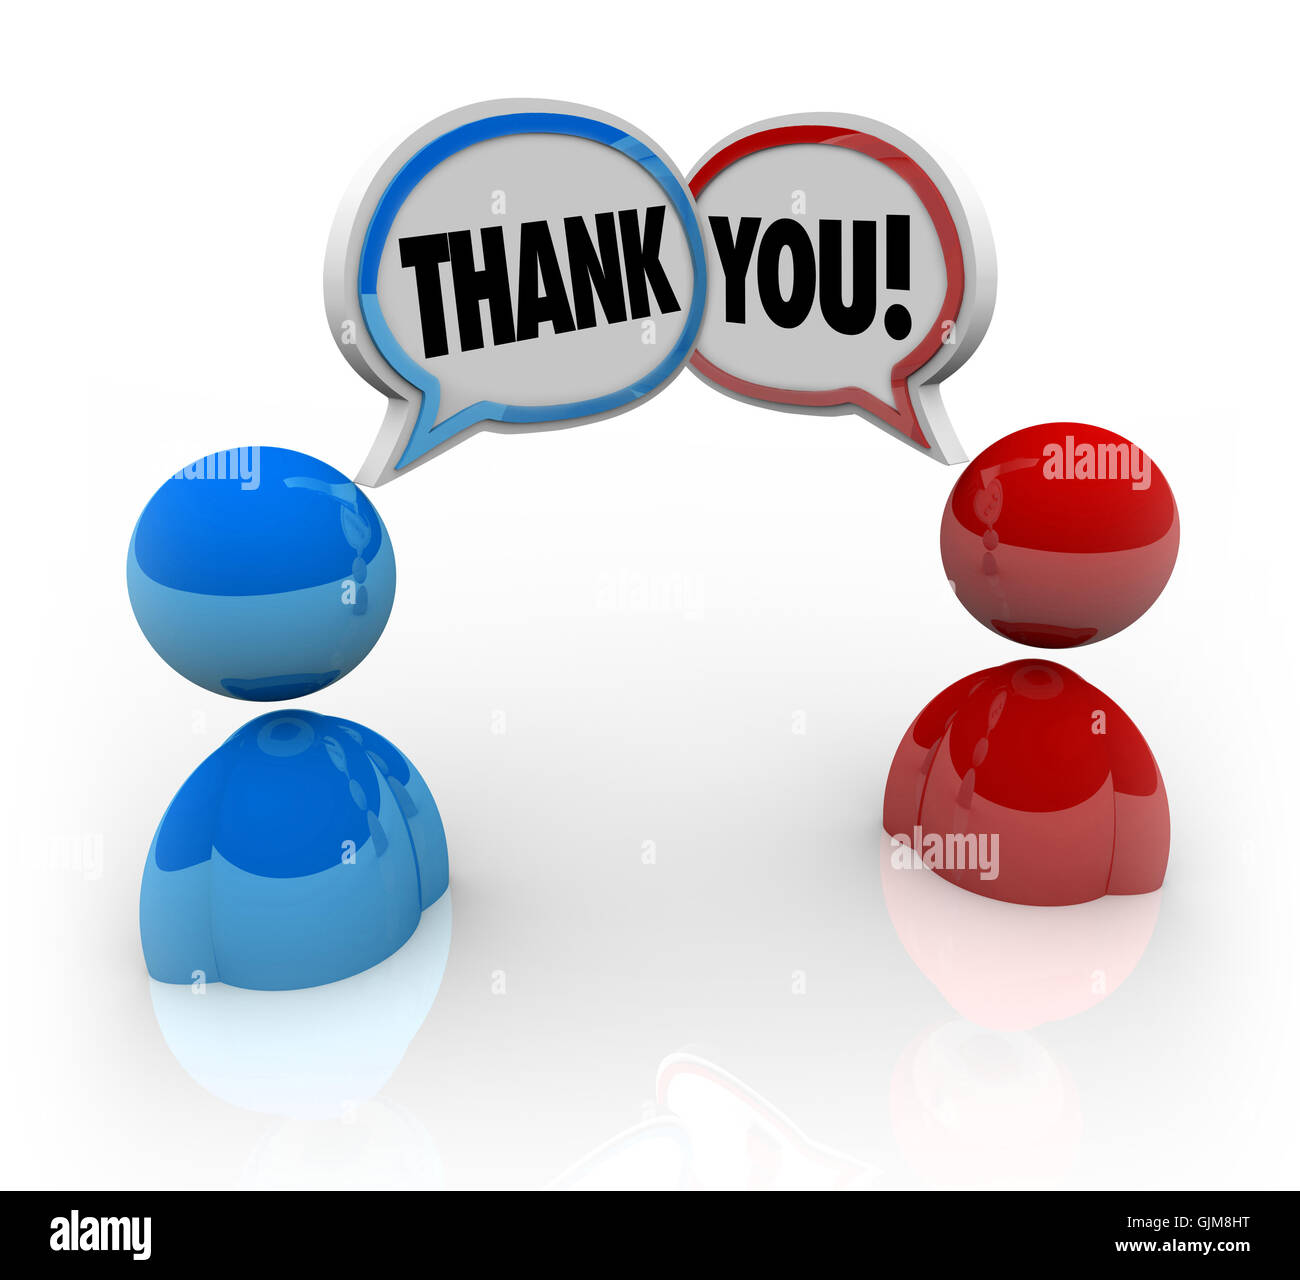 Thank You - Two People Voicing Appreciation - Stock Image